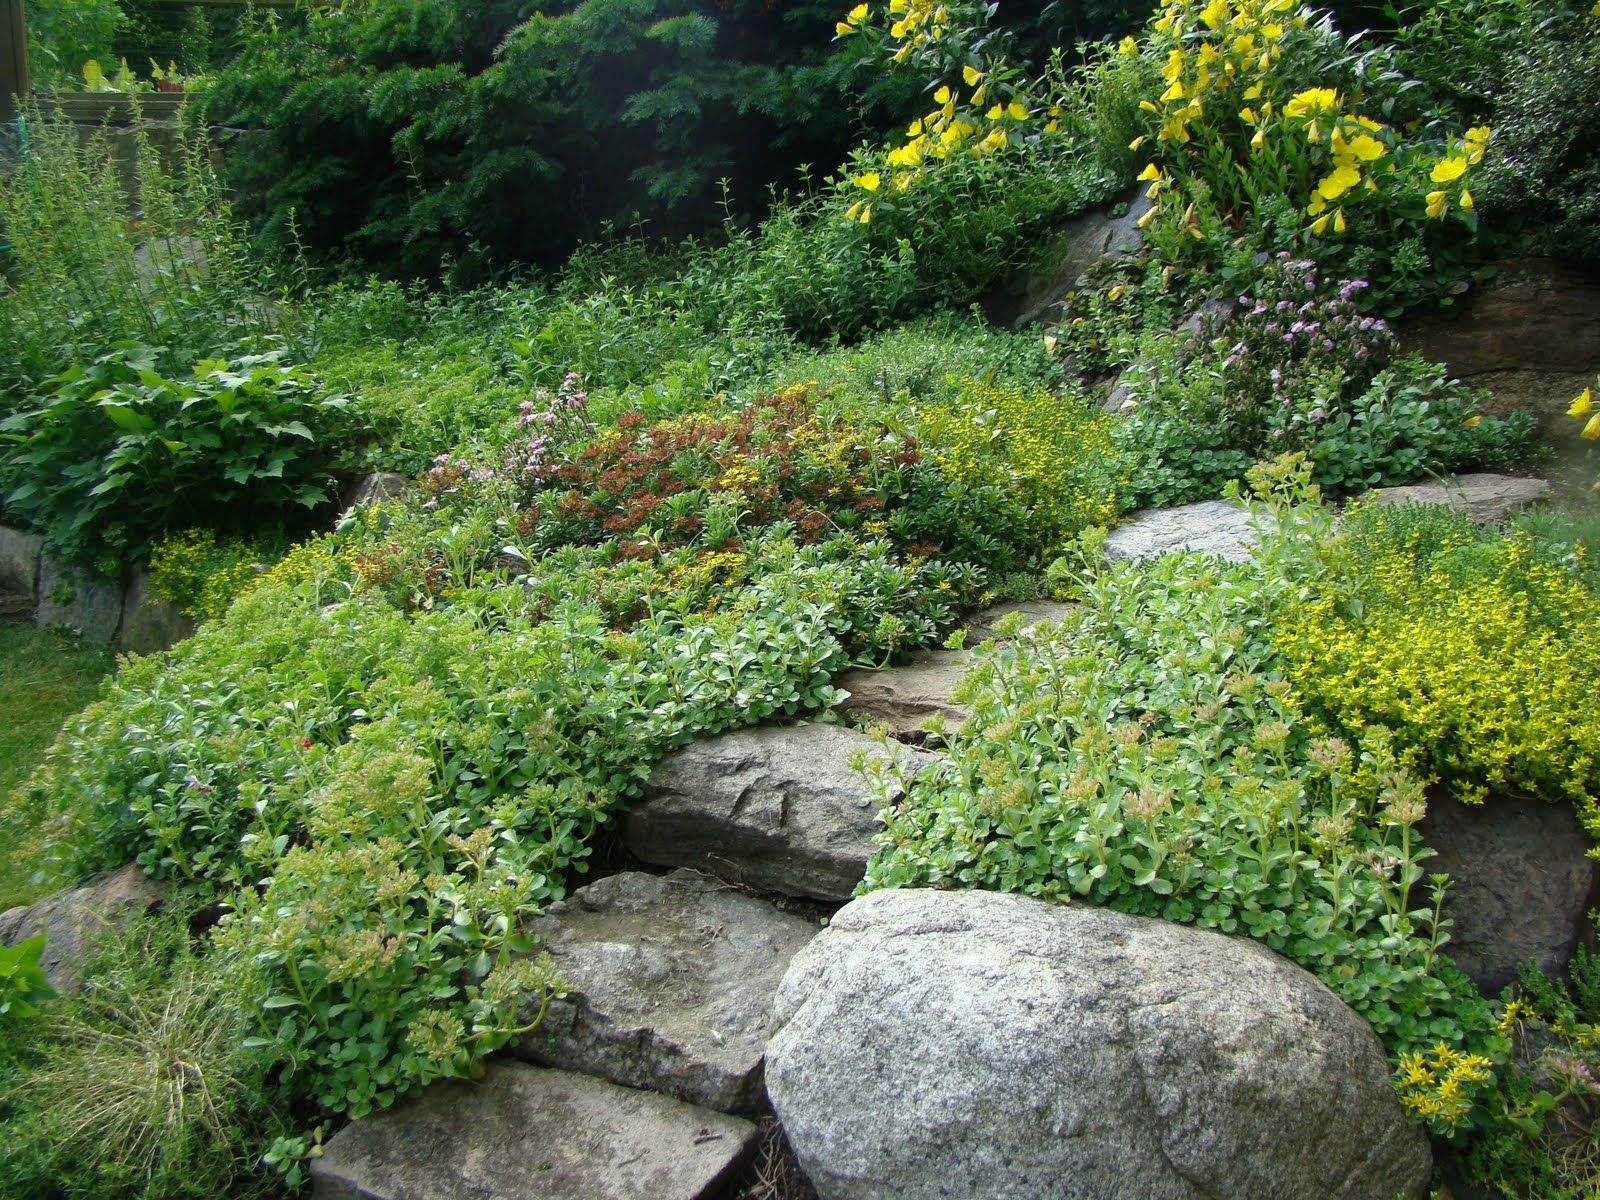 Serenity In The Garden: A Rock Garden To Celebrate Spring